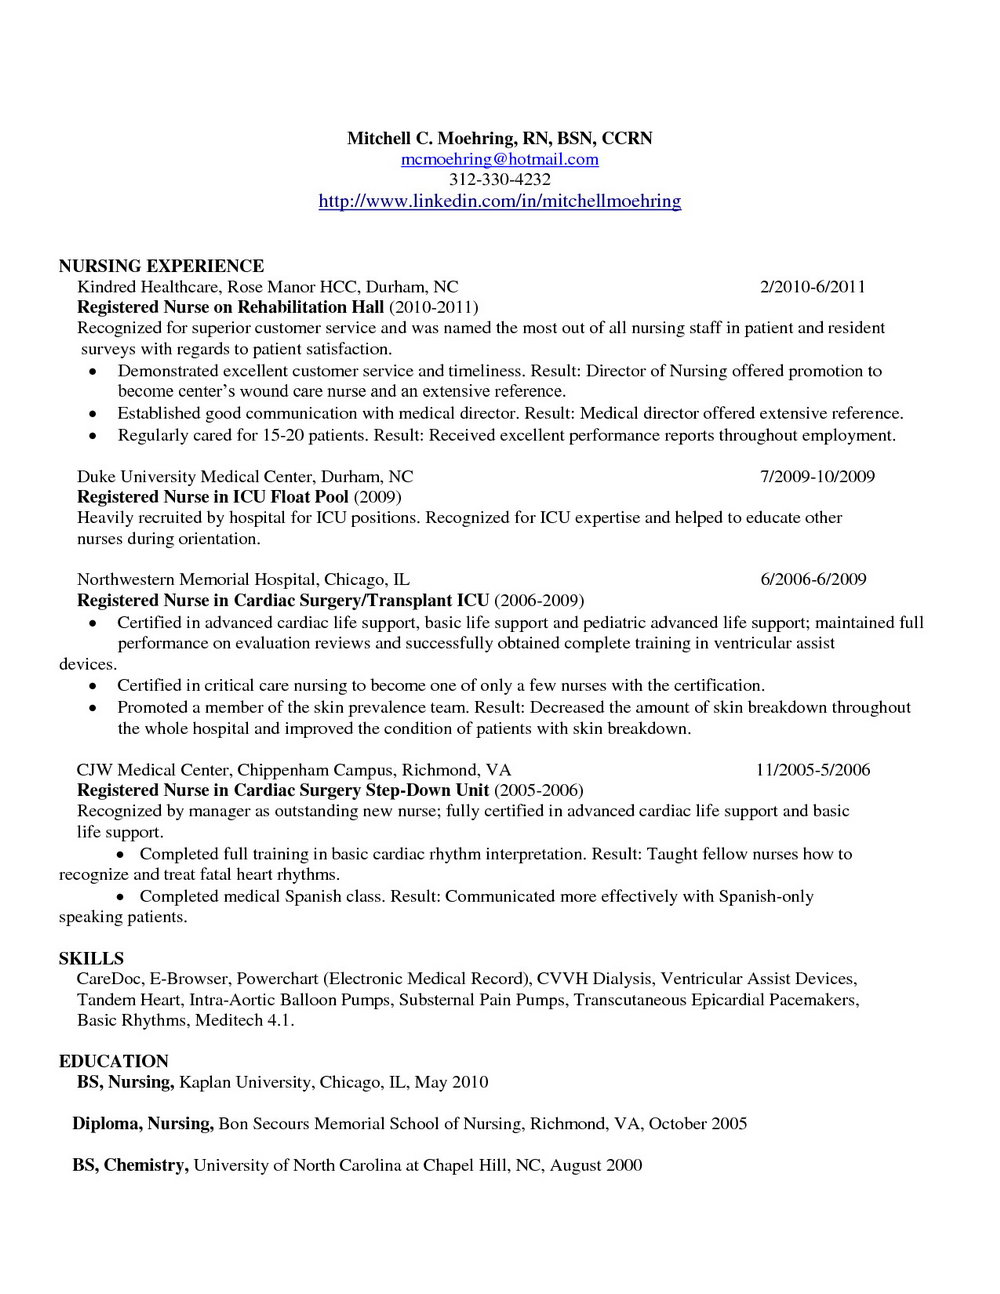 Resume For Registered Nurse In Australia